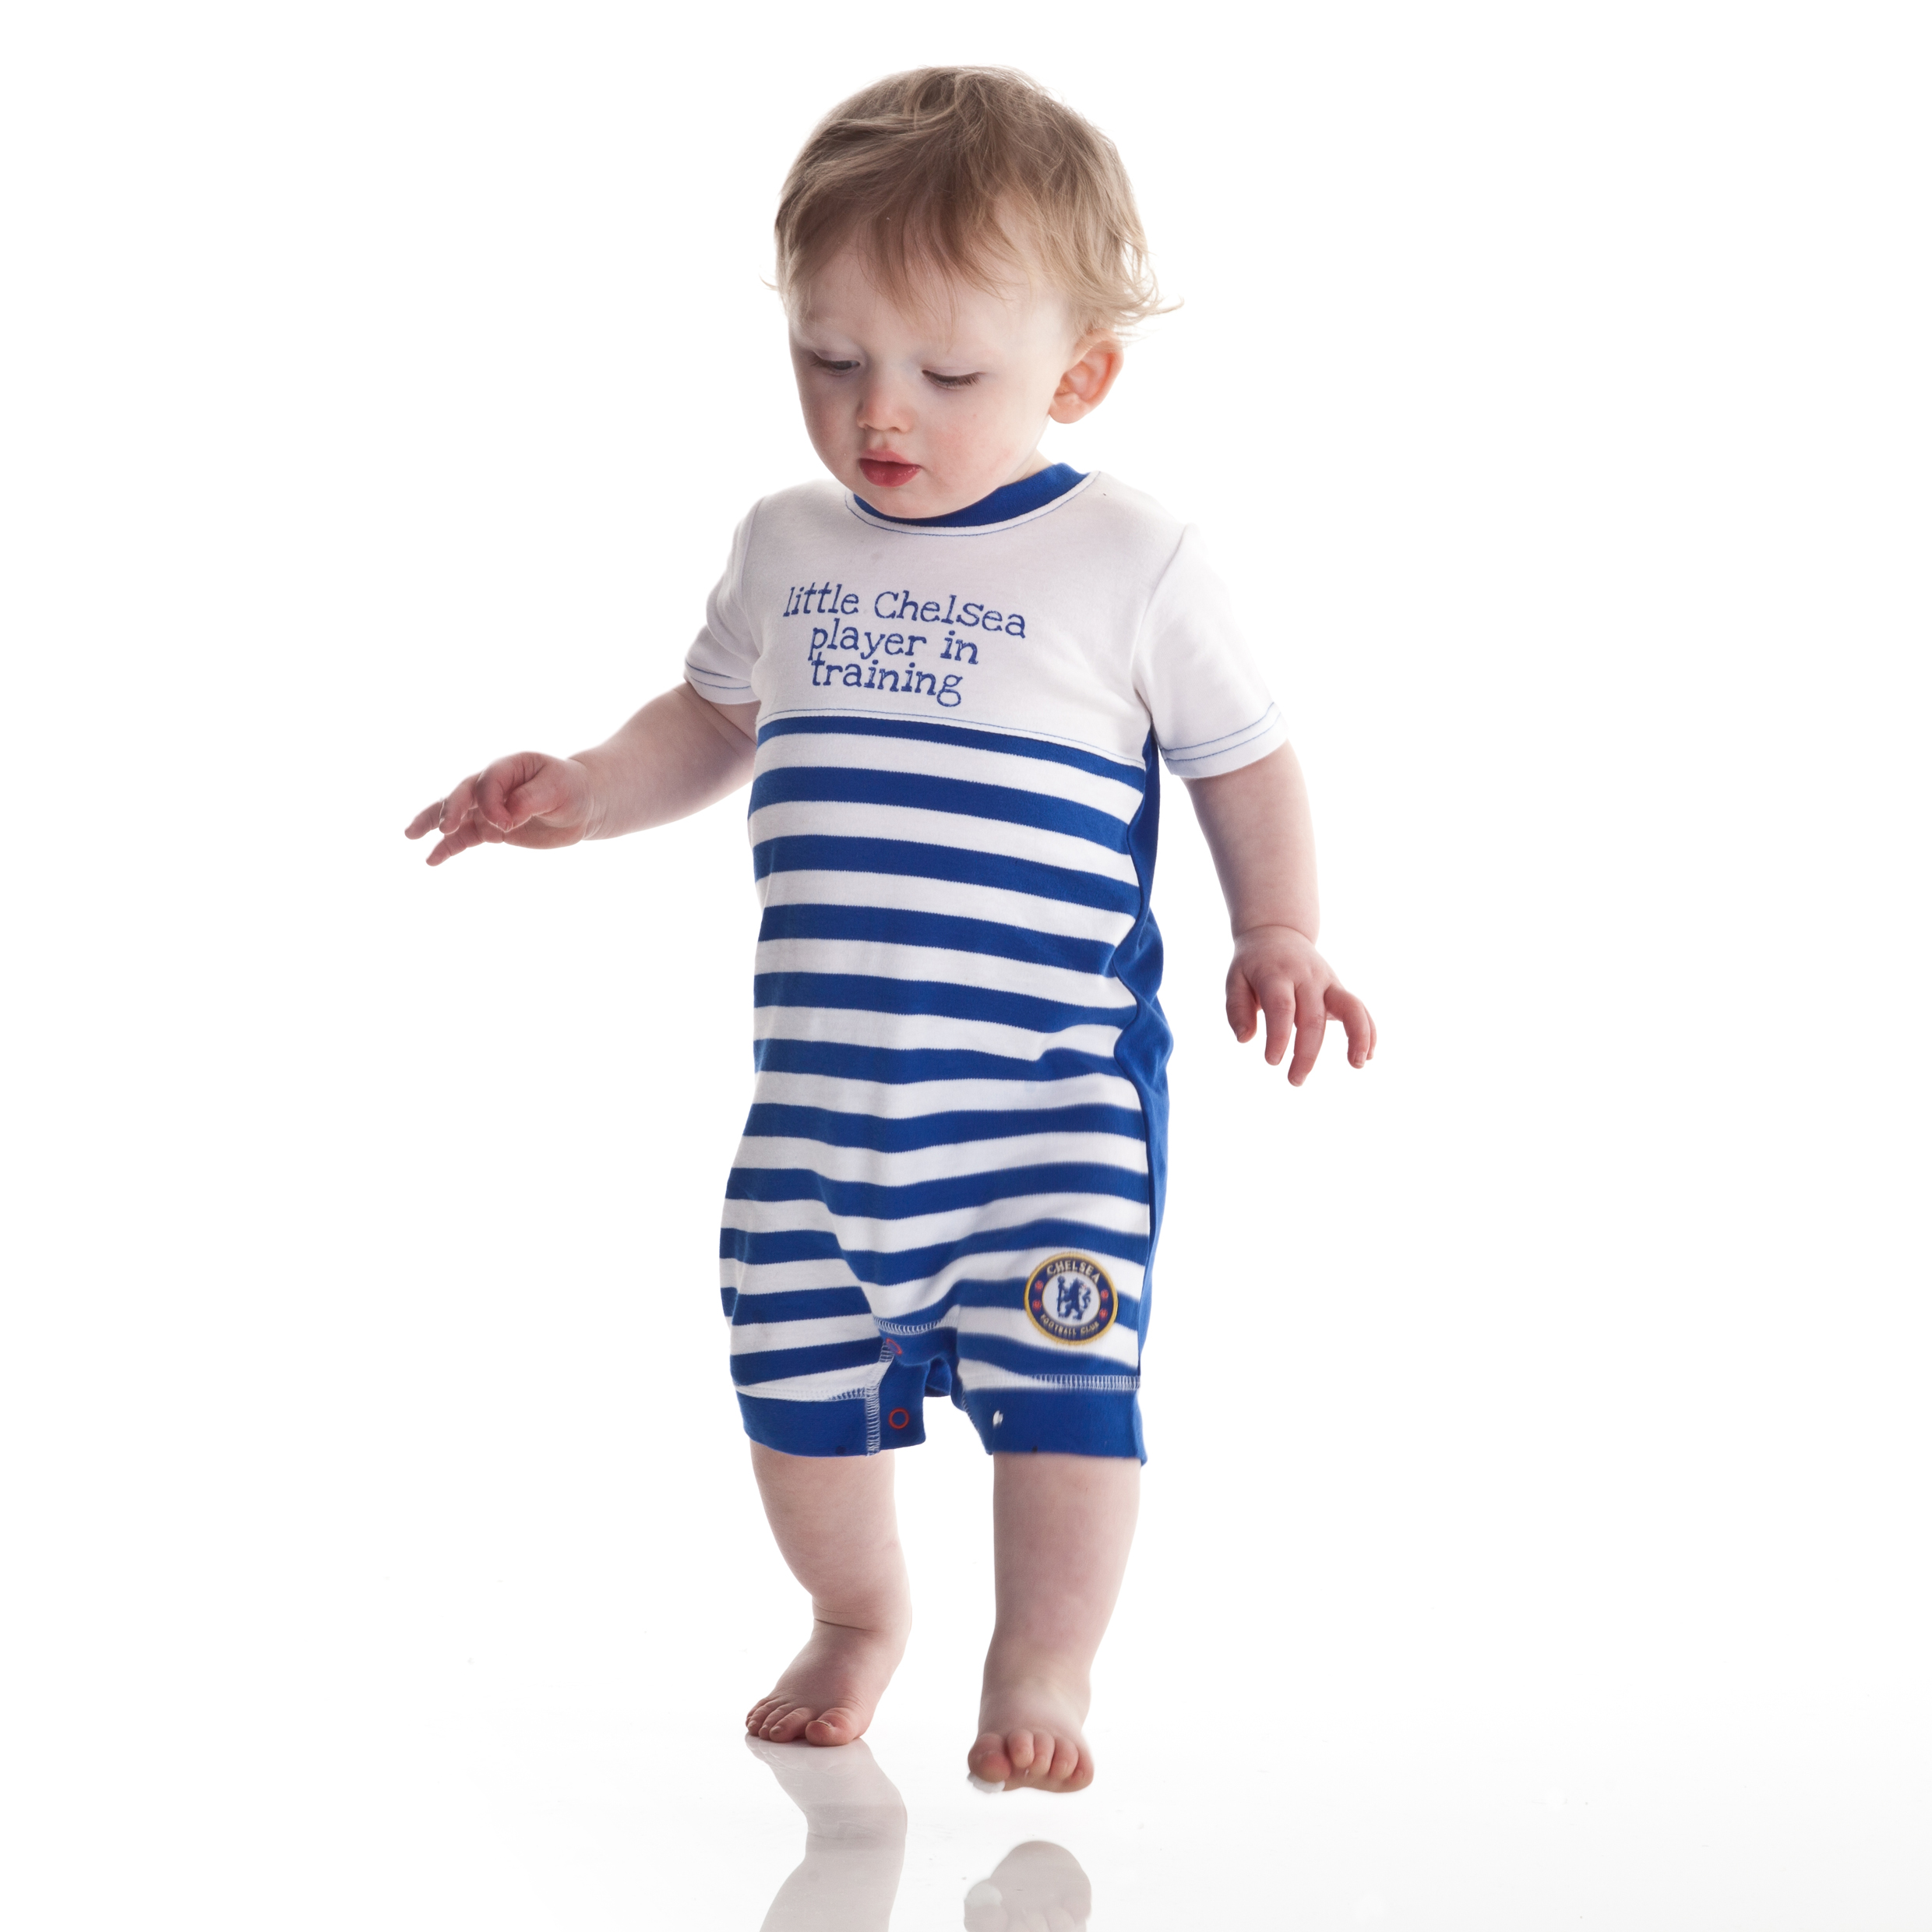 Chelsea Romper and Dribbler Set - White/Reflex Blue - Baby Boys